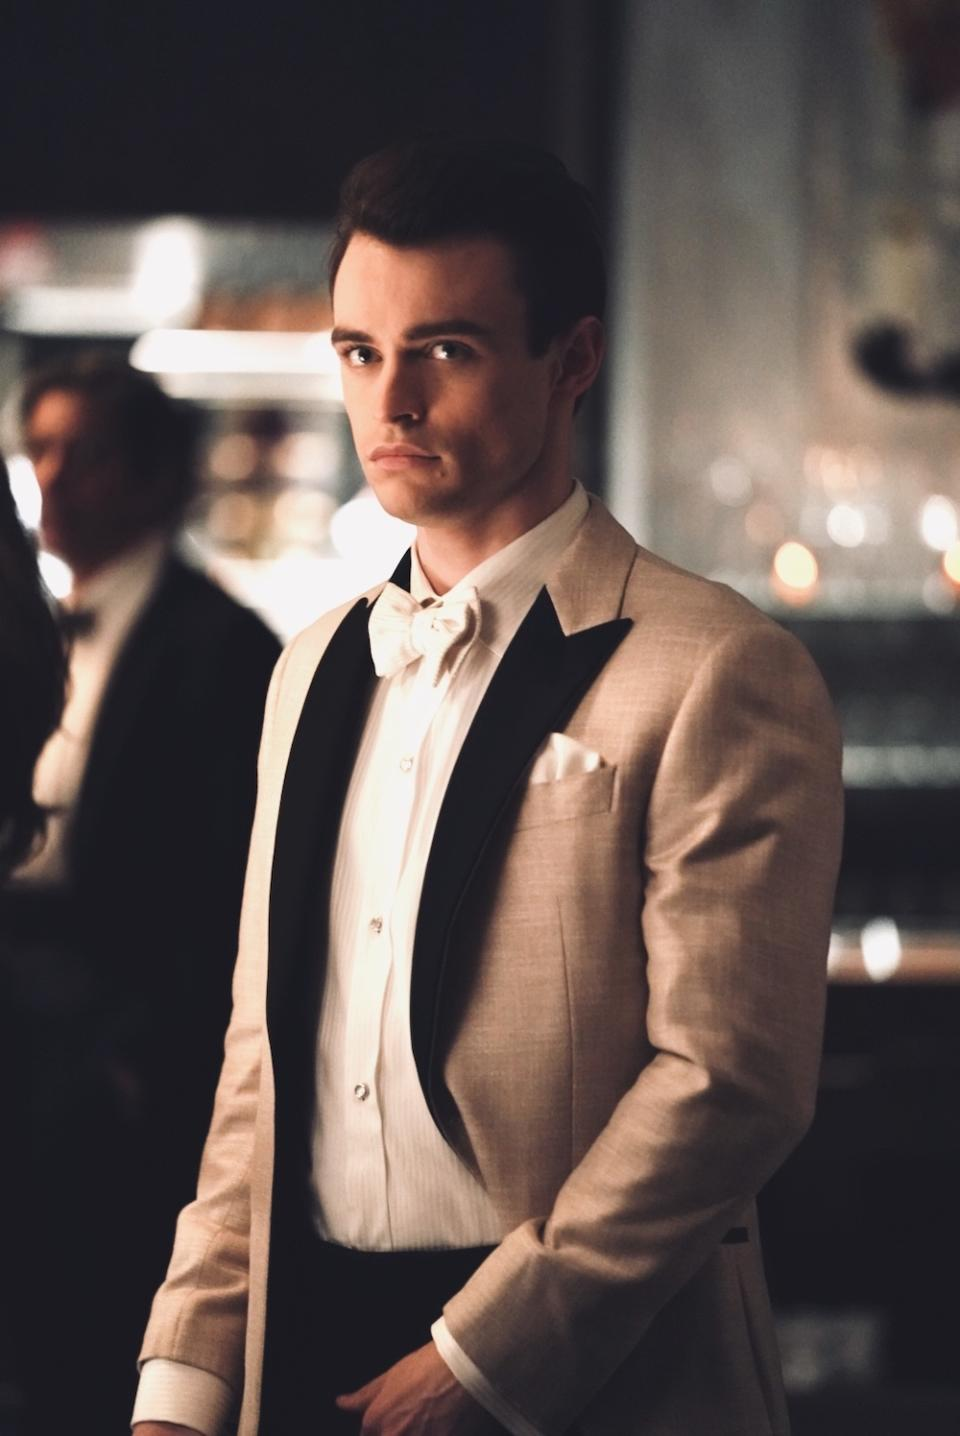 Thomas Doherty as Max Wolfe in Gossip Girl. (HBO Max)